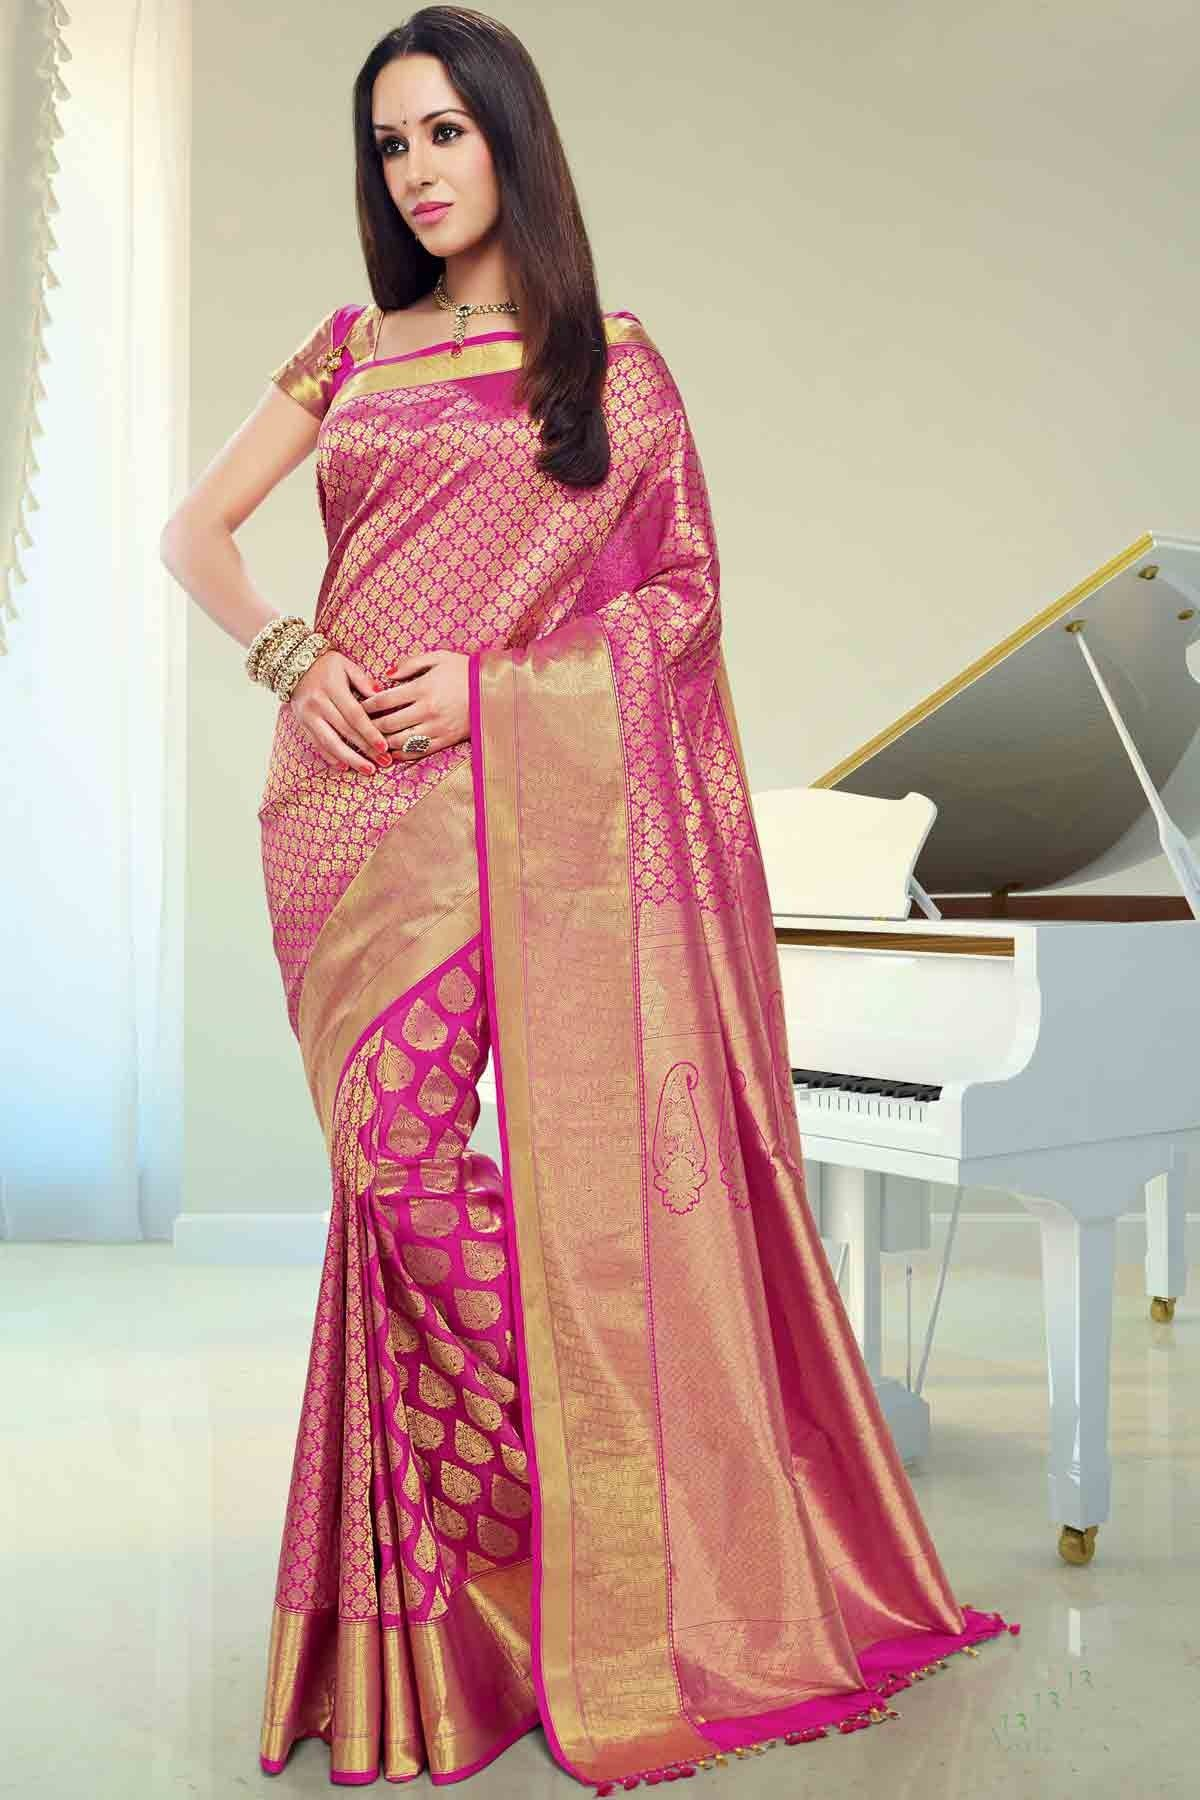 Pink Silk Brocade Zari Weaved Saree In Golden Border For Wedding Online Ping